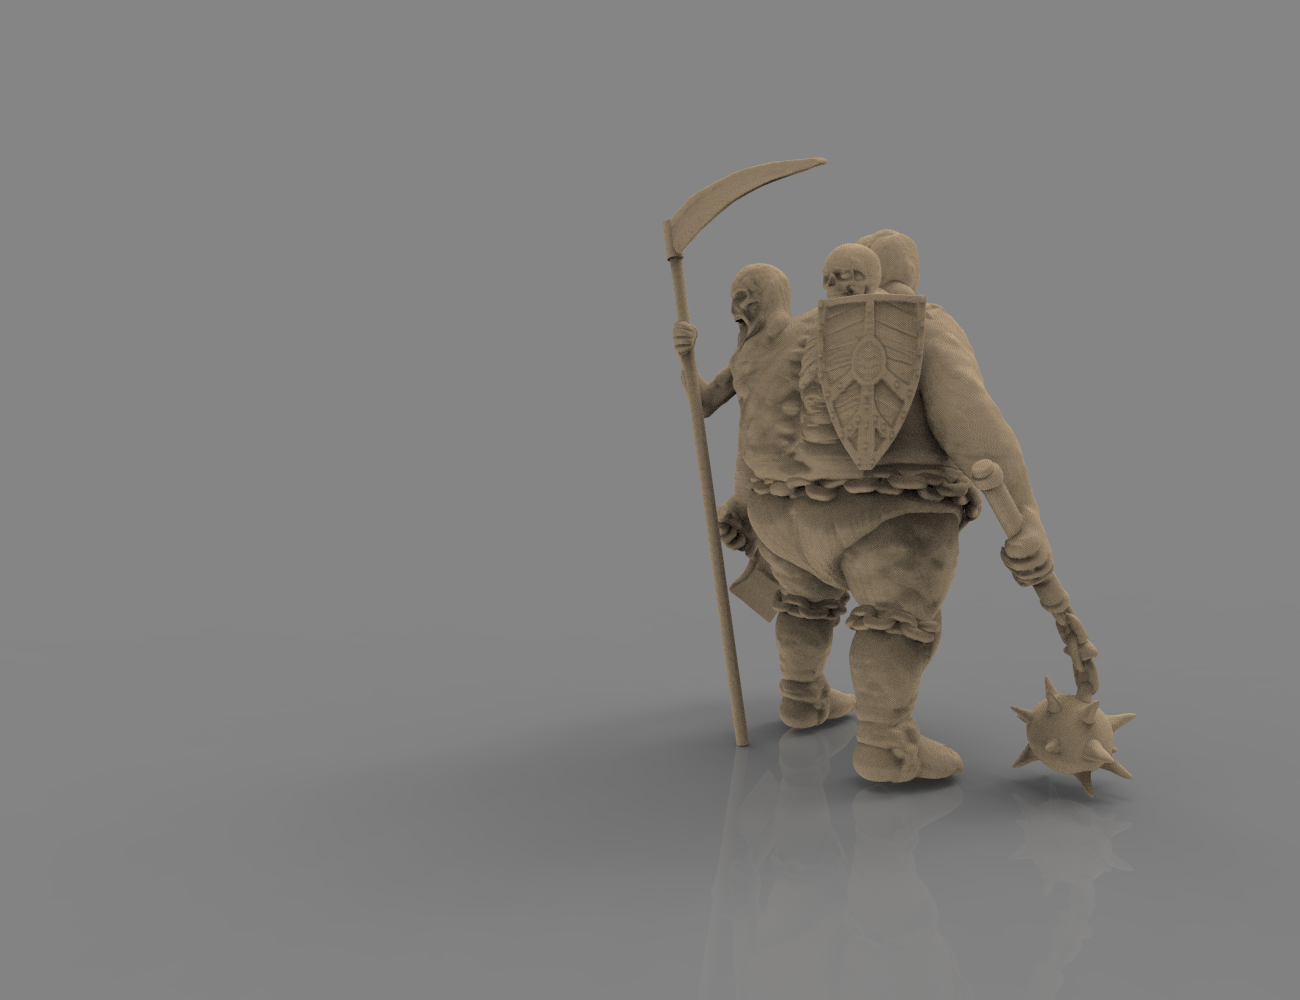 fatman_scene.78.png Download STL file Pirfes figure - 3D print model • Design to 3D print, 3D-mon